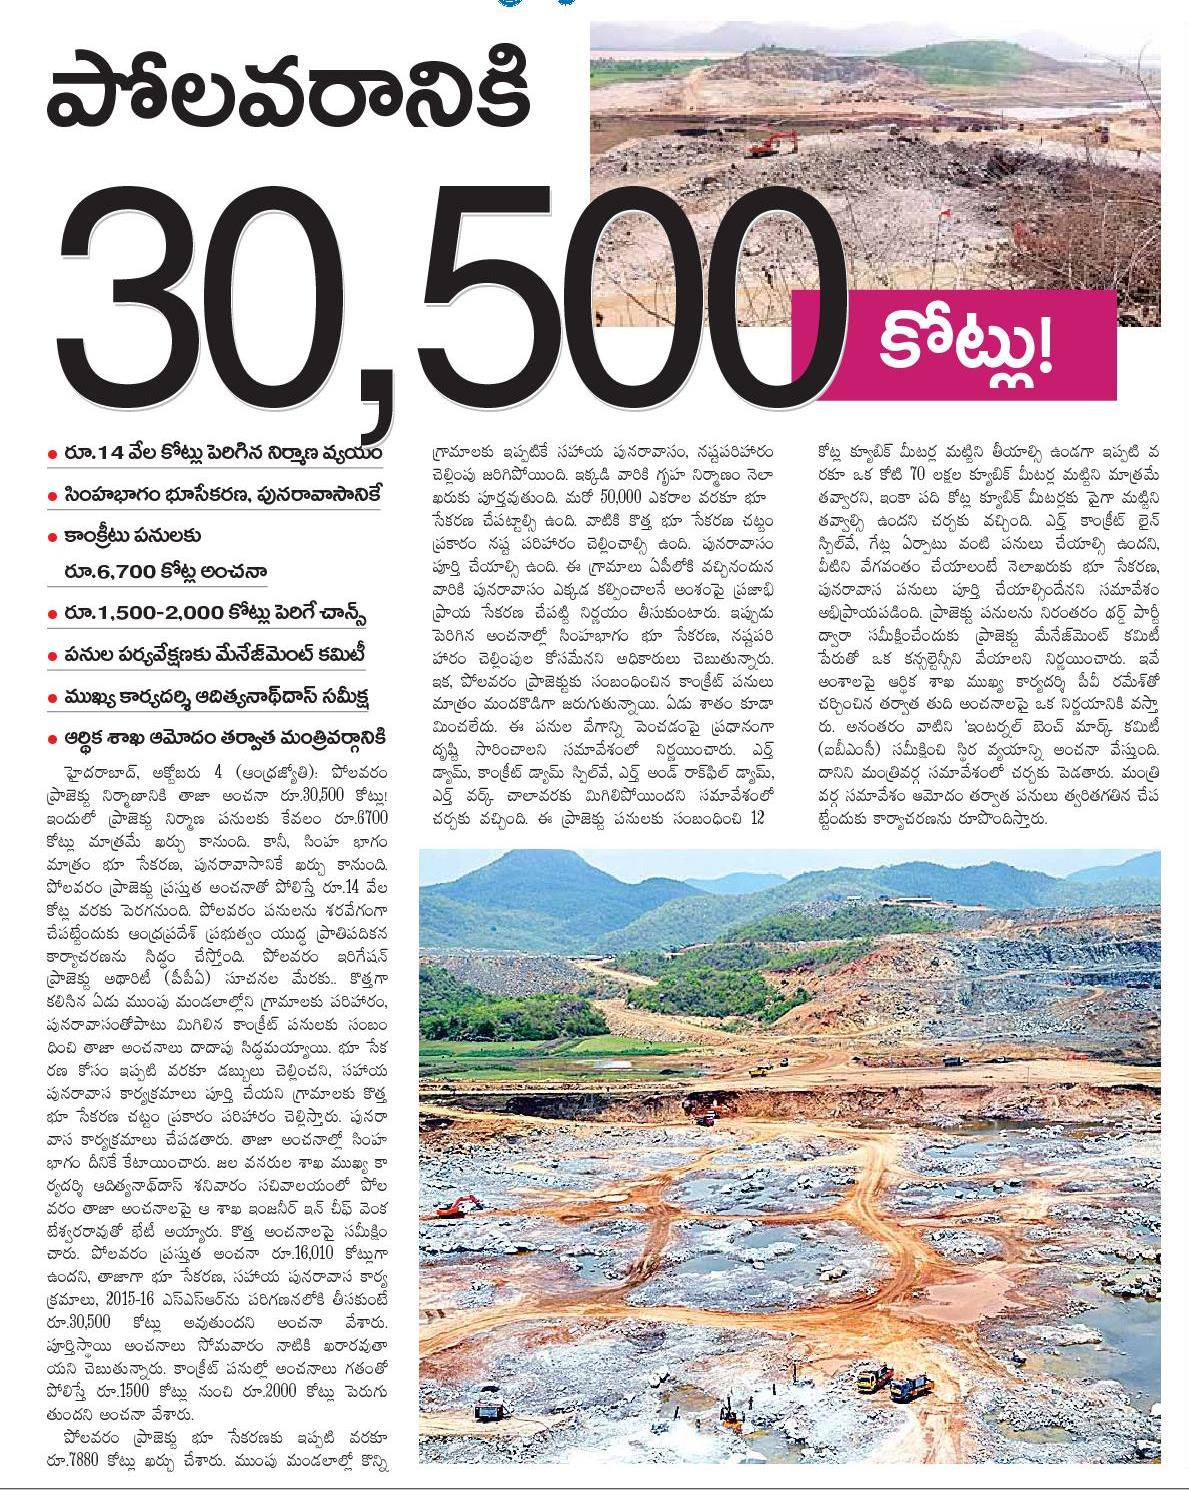 Polavaram Project estimation cost is 35,000 crores